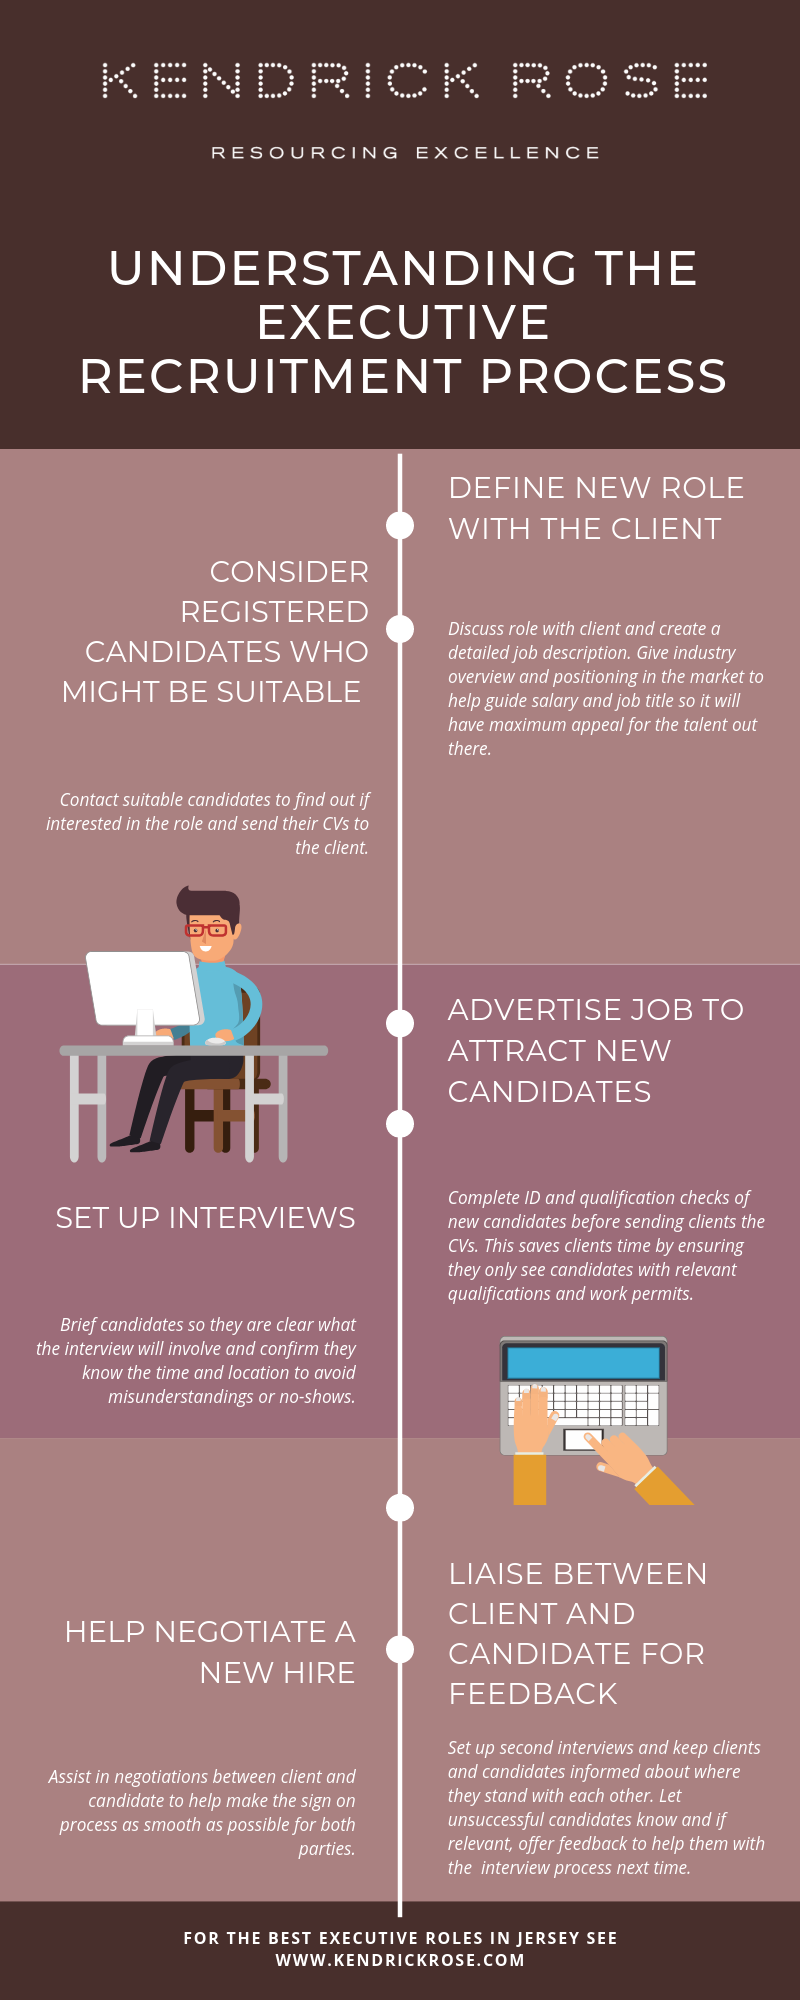 Executive Recruitment Process Infographic 2